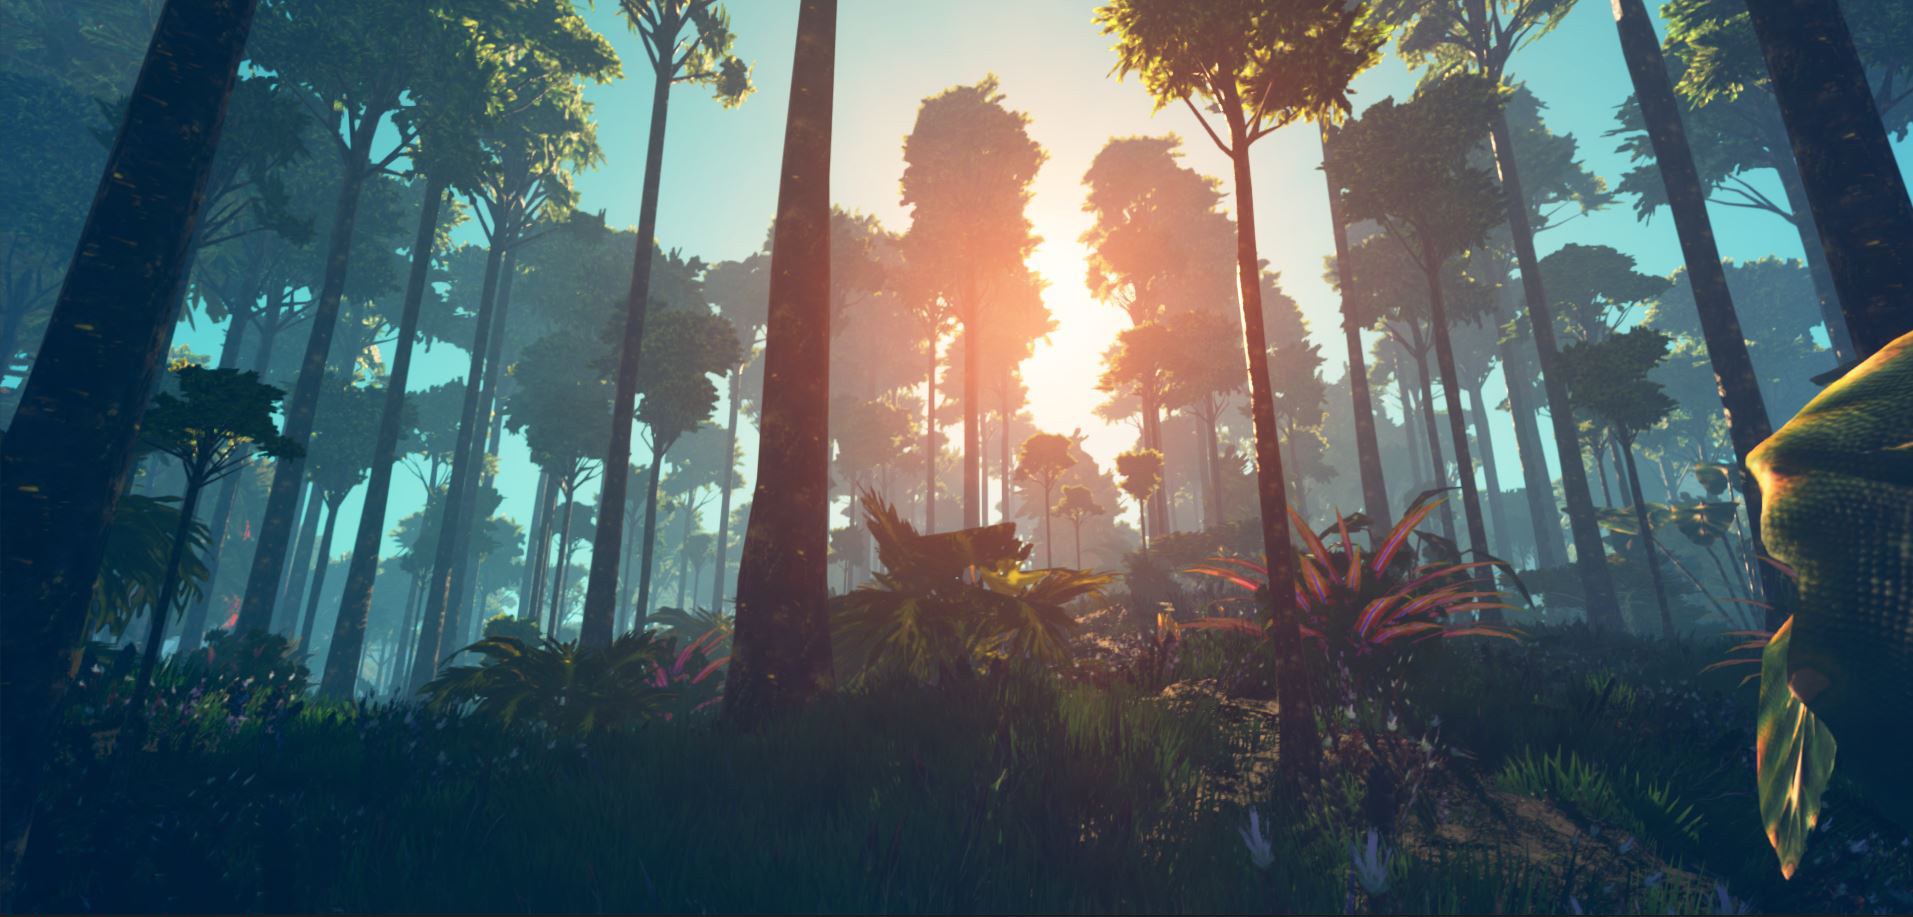 Look at the sun playing with the trees. Planet Nomads